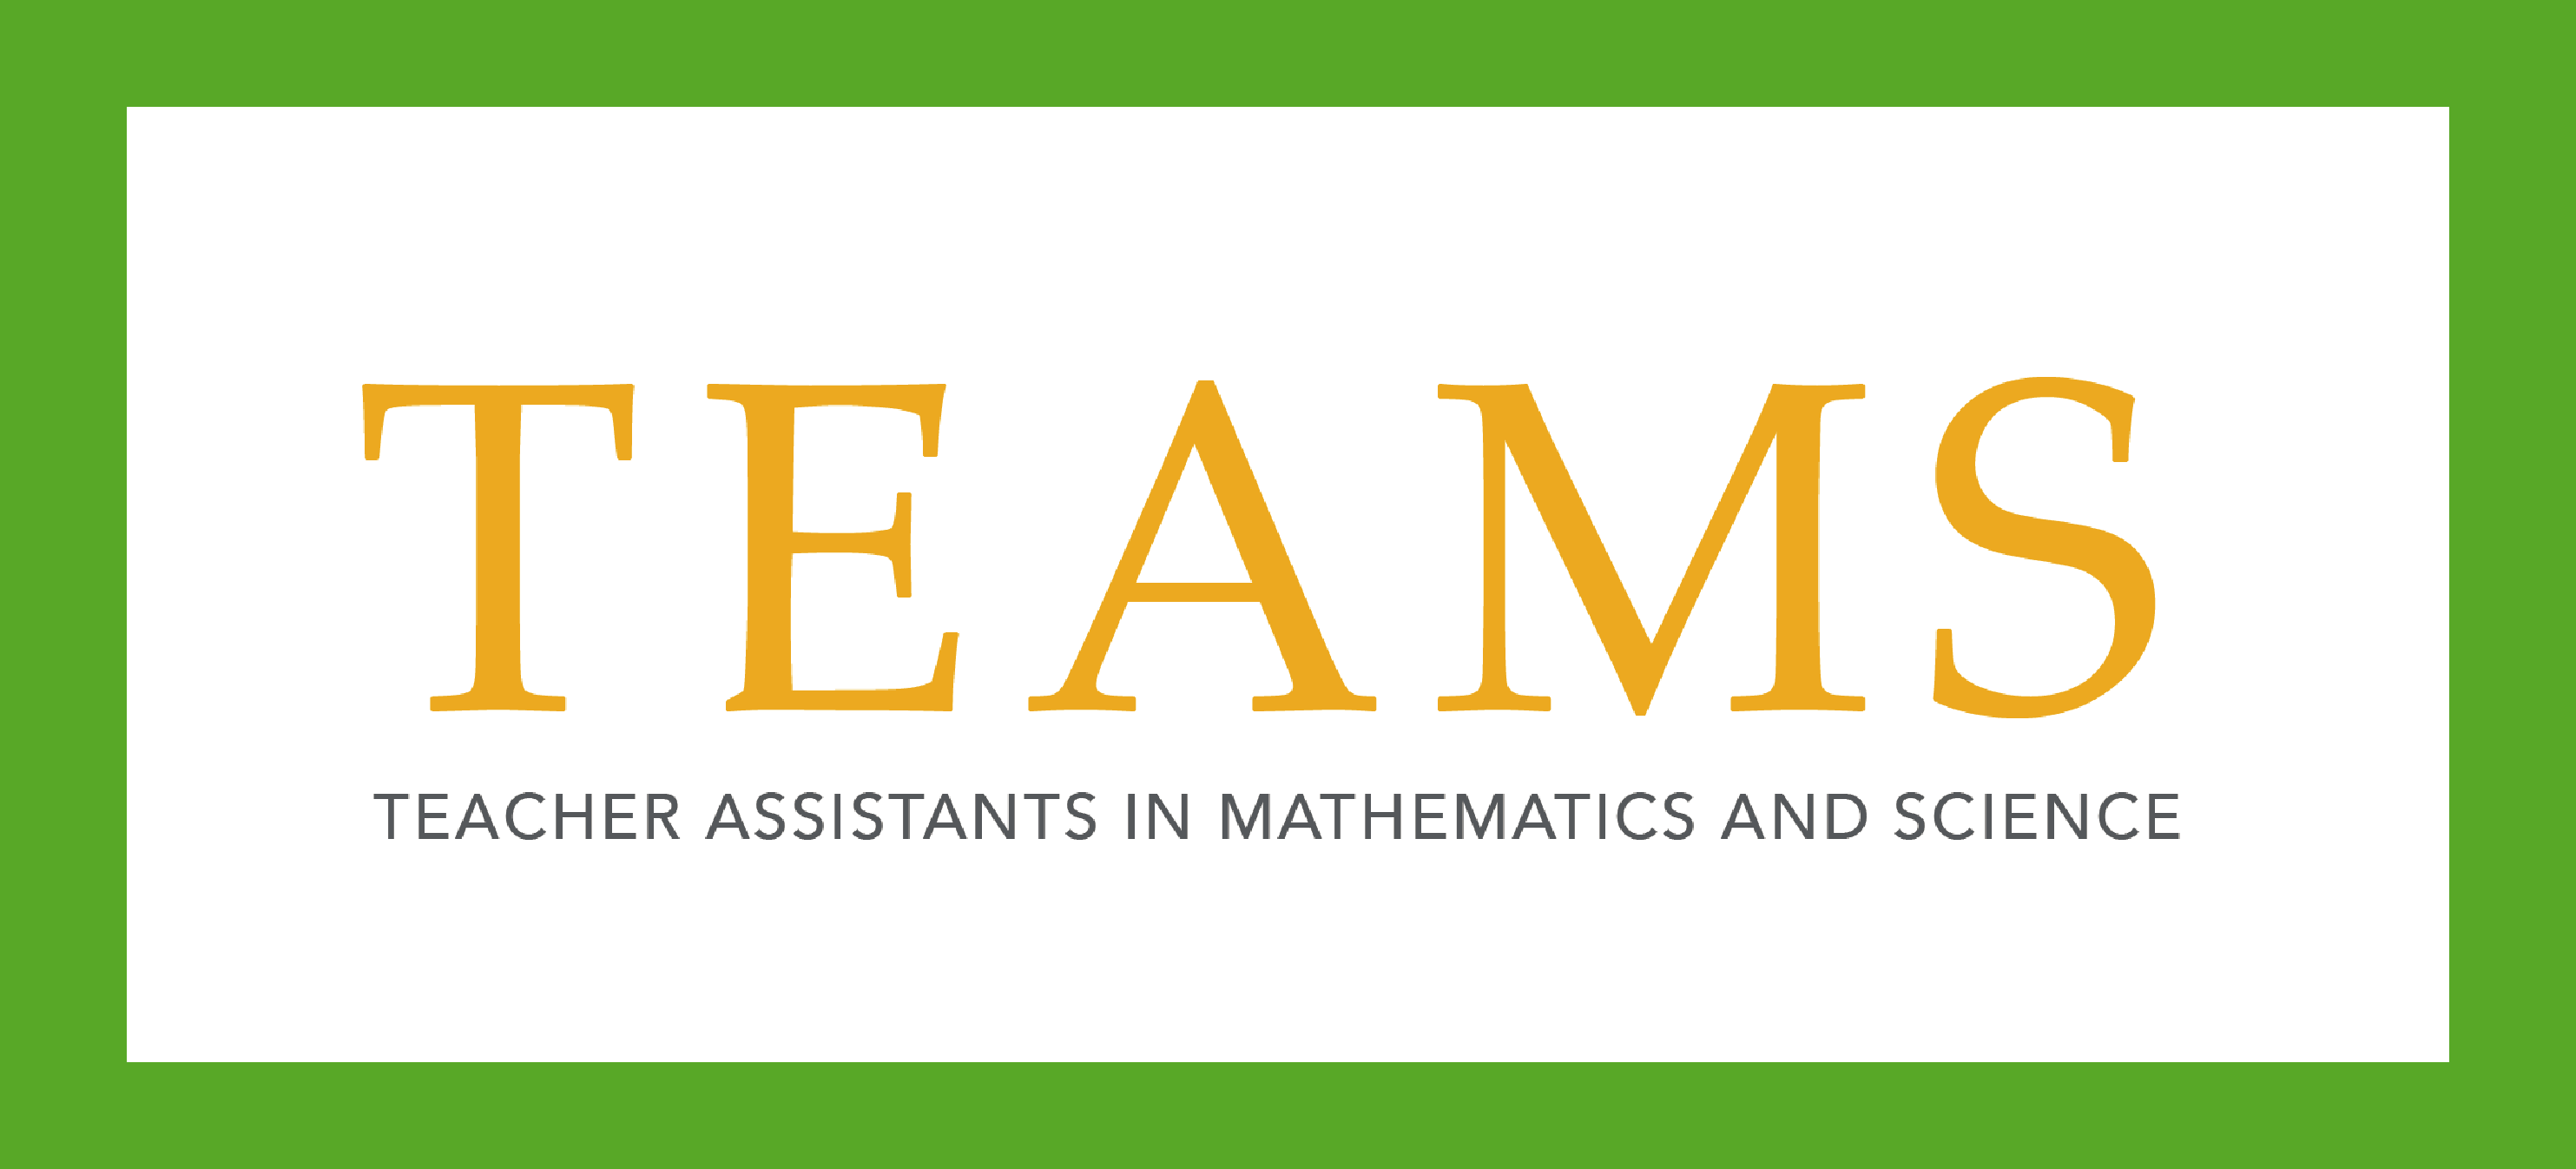 TEAMS: teacher assistants in mathematics and science